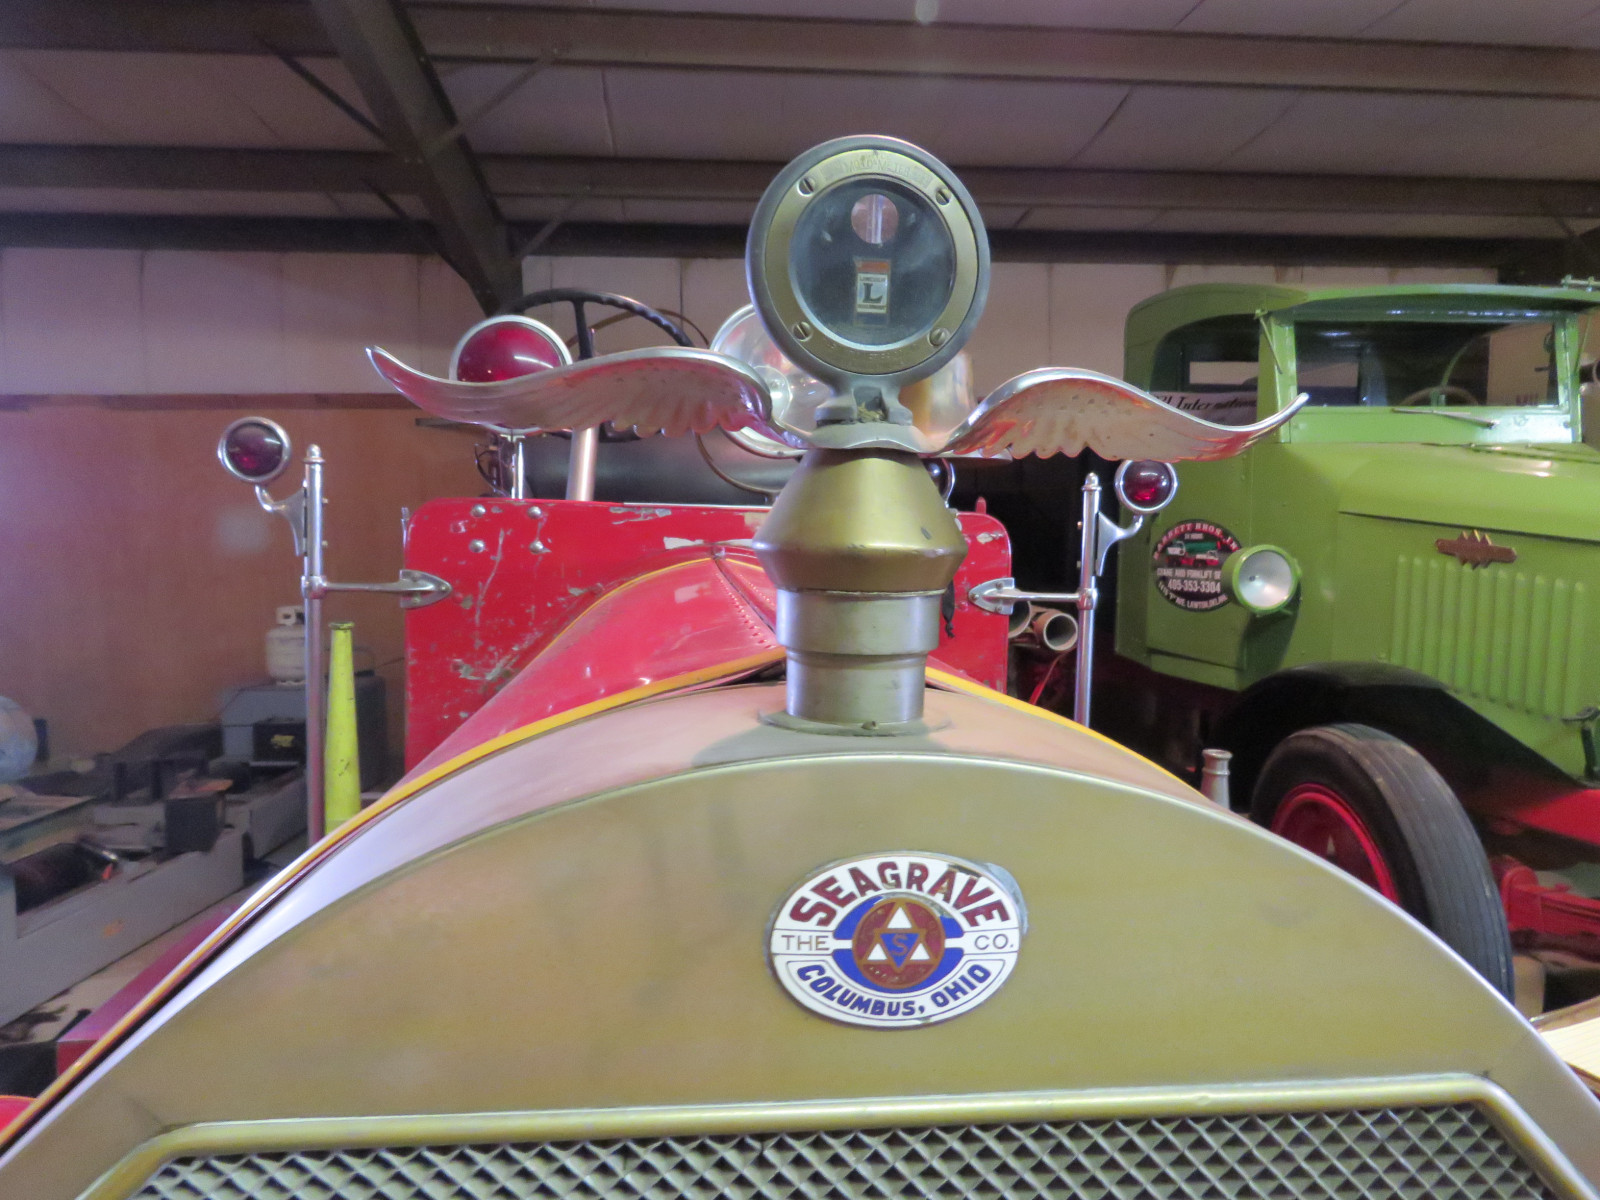 1915 Seagraves Fire Truck - Image 8